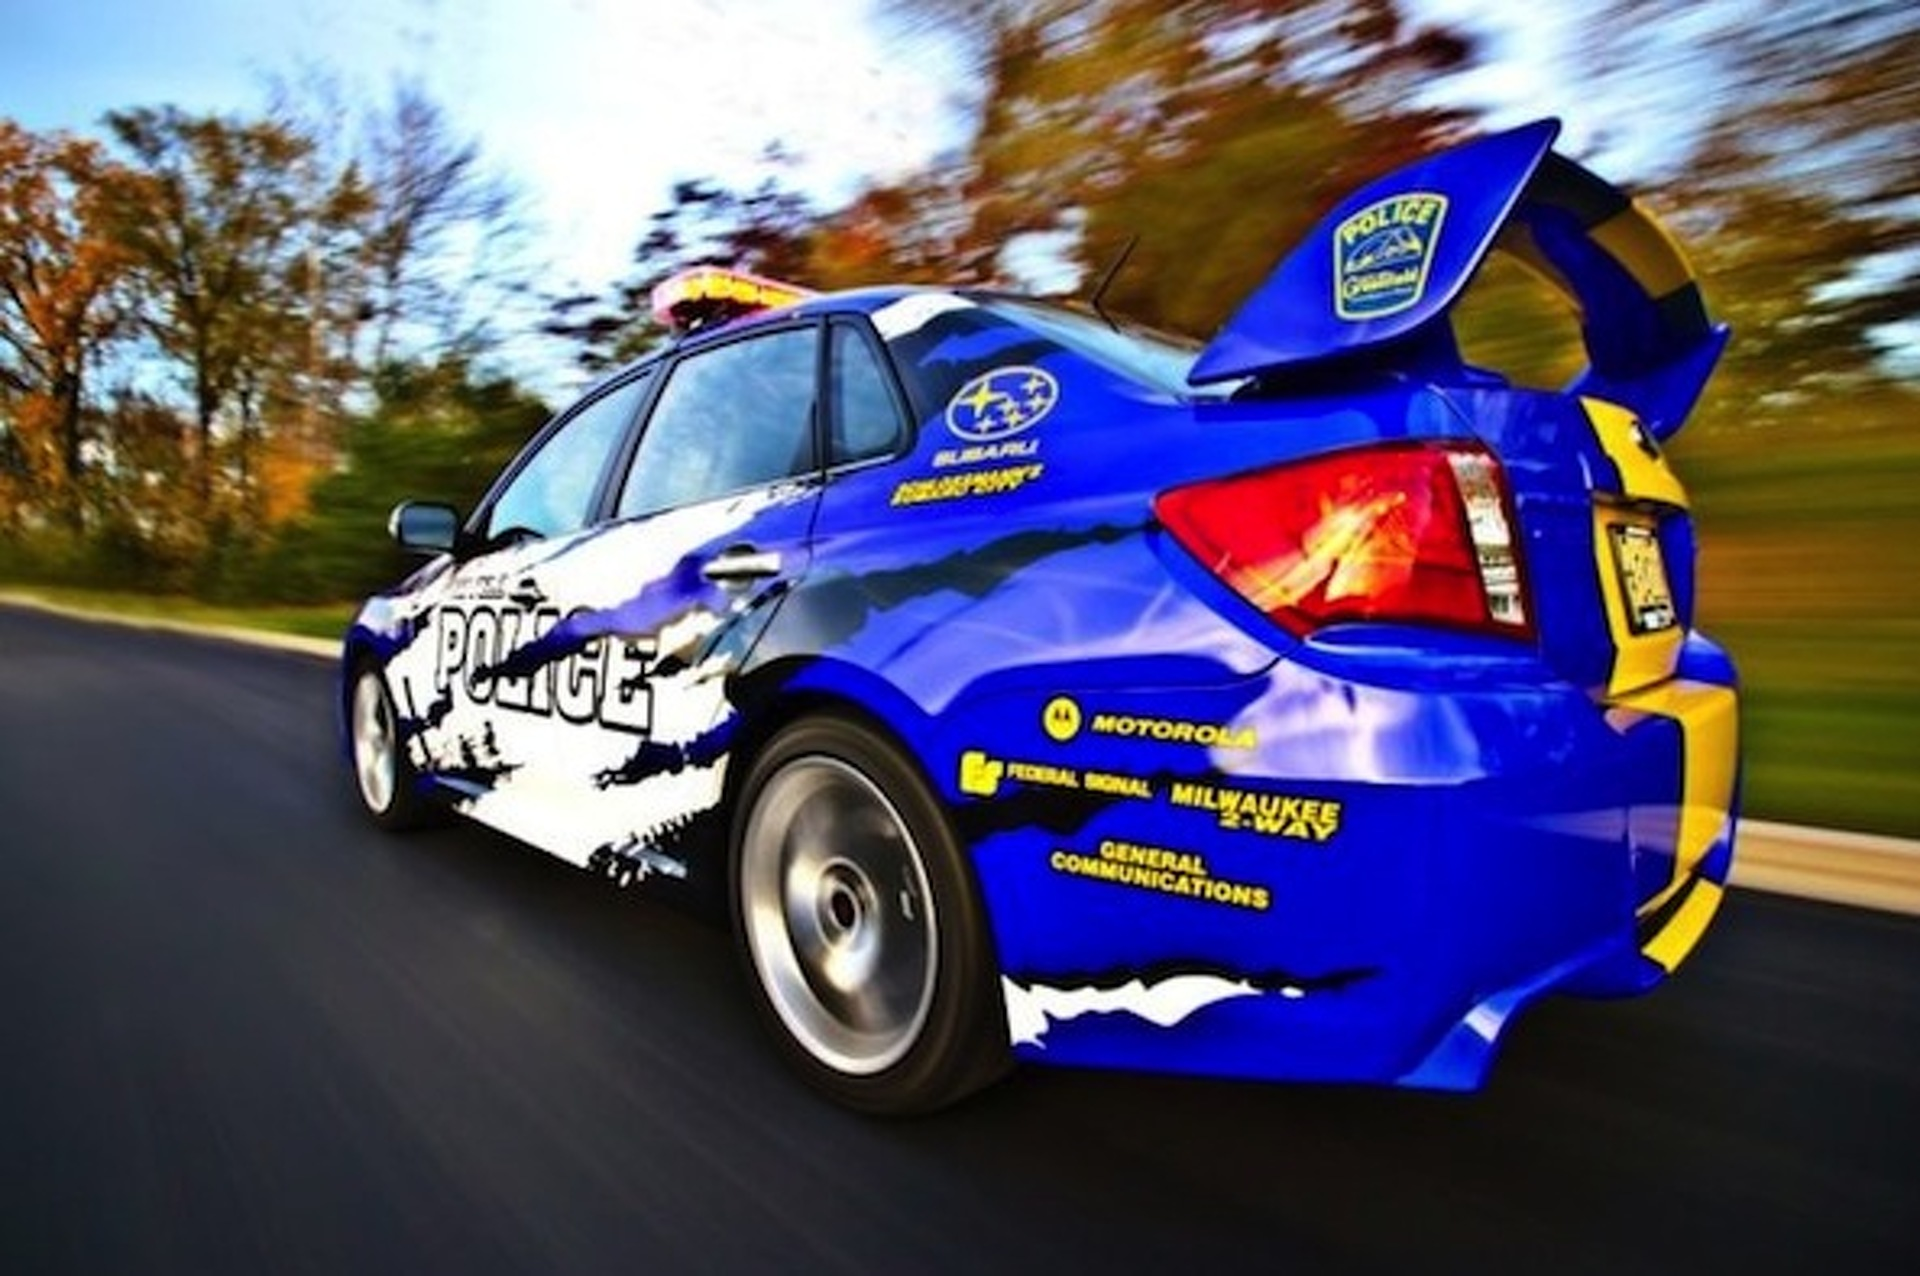 Wisconsin Police Enlist Subaru WRX STI For Duty